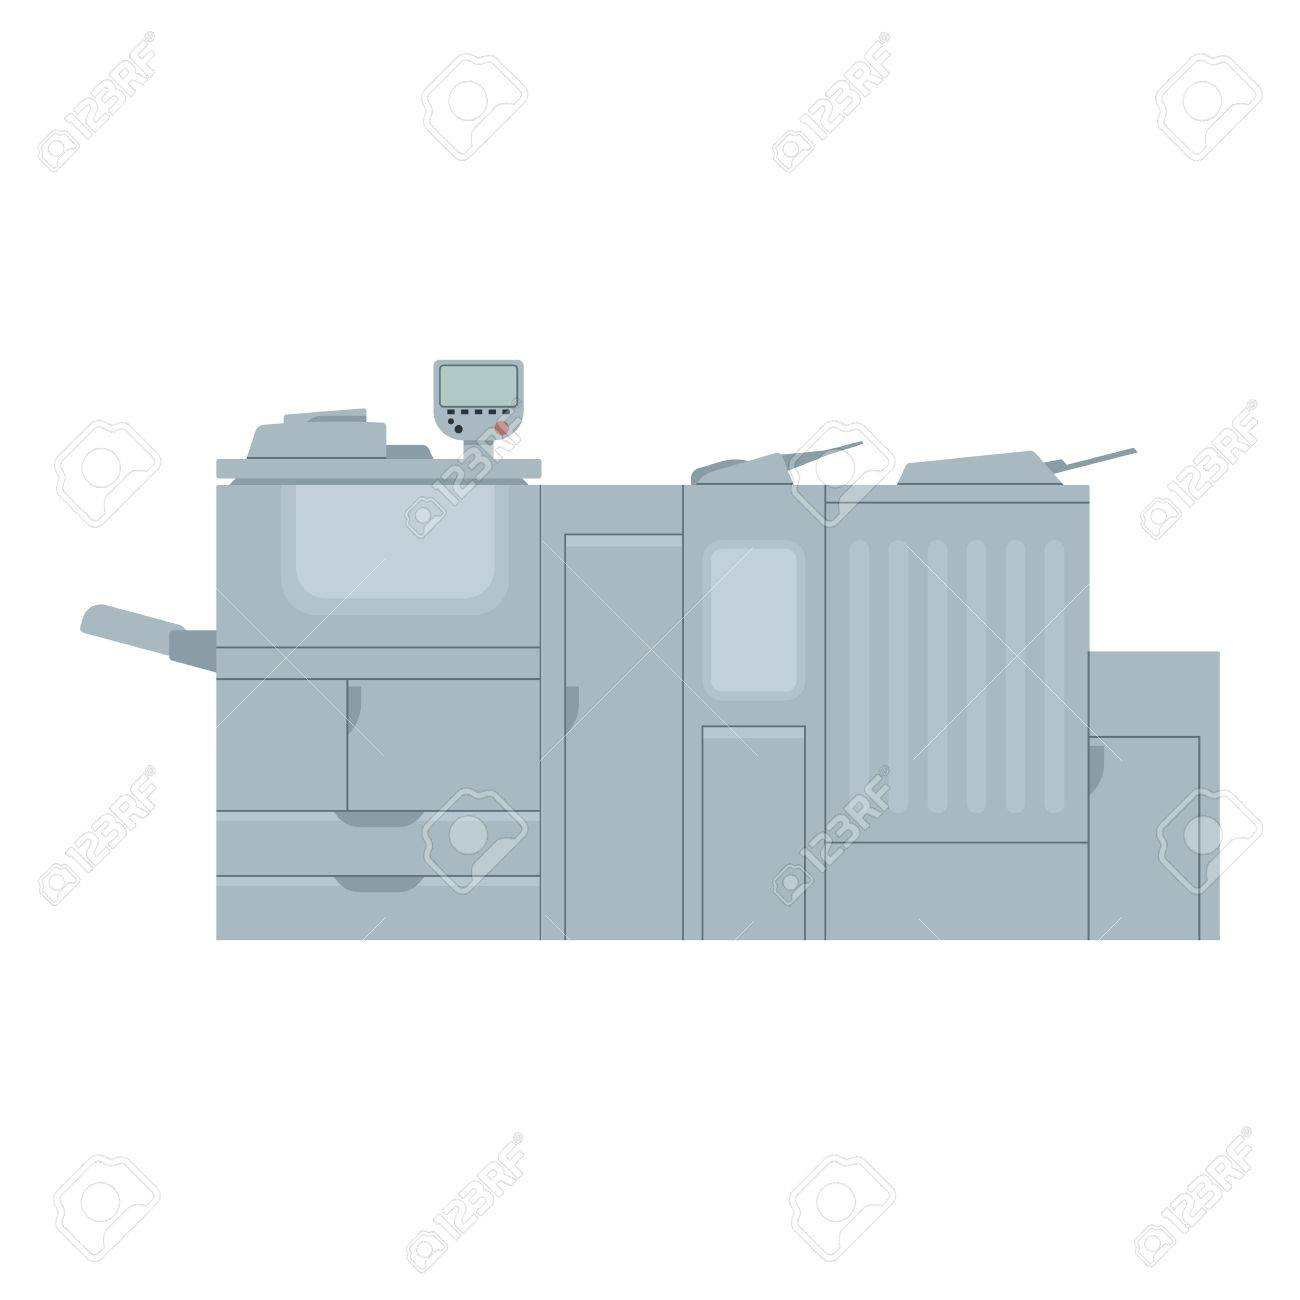 Diagram Of A Digital Printer